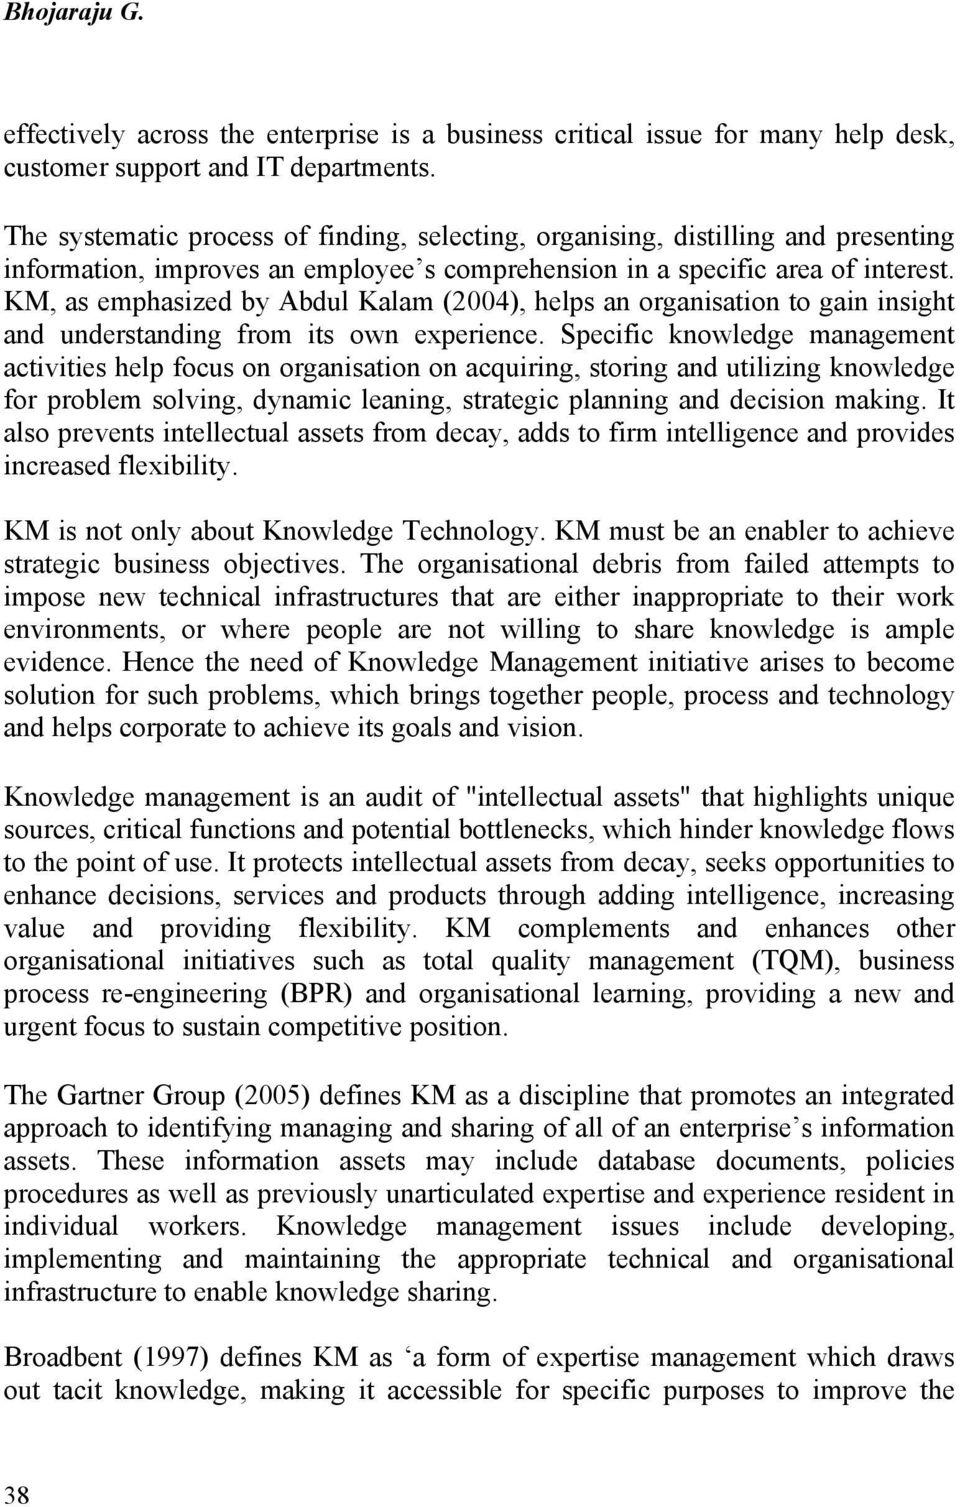 KM, as emphasized by Abdul Kalam (2004), helps an organisation to gain insight and understanding from its own experience.